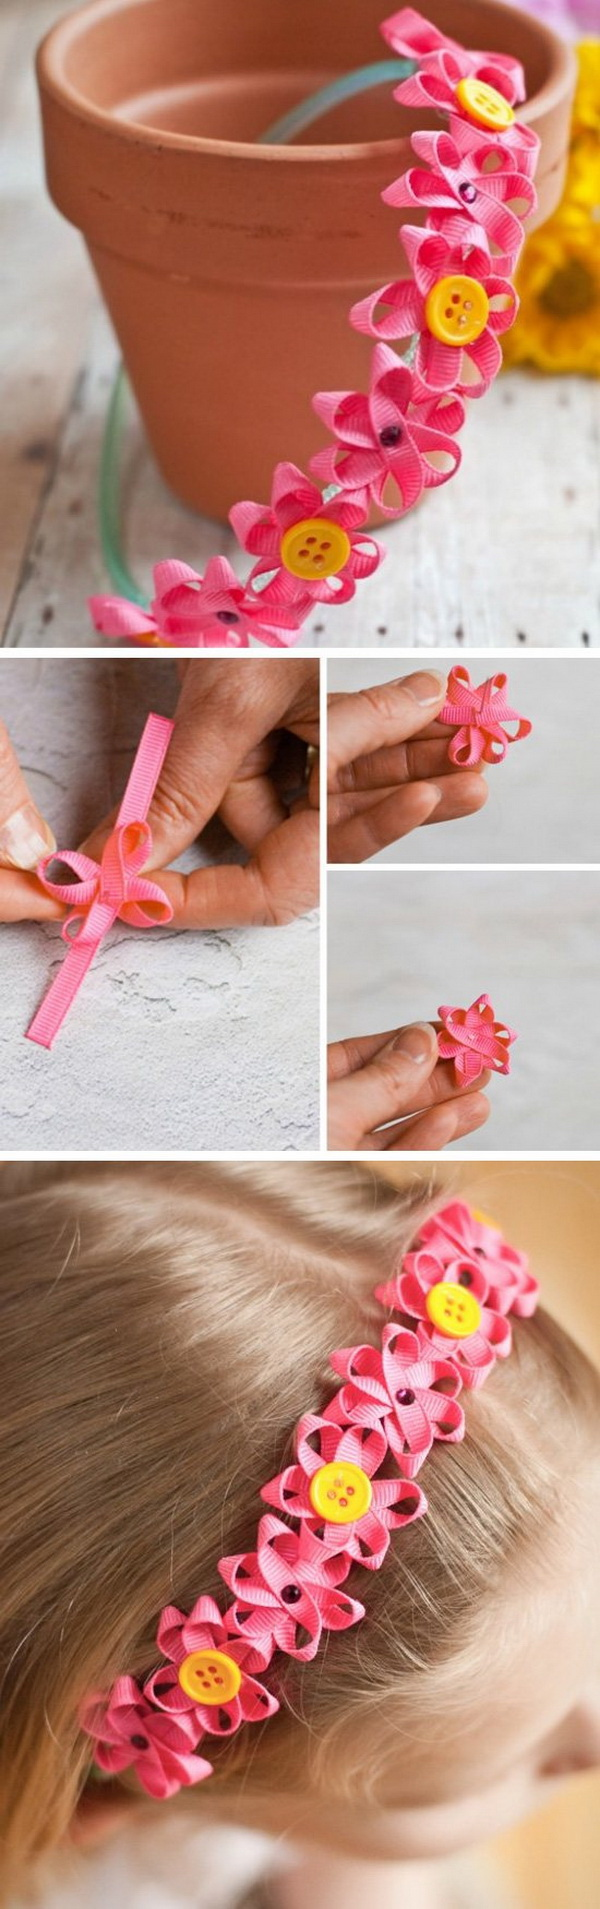 Easy Kids Craft Ideas: Ribbon Flower Headband.